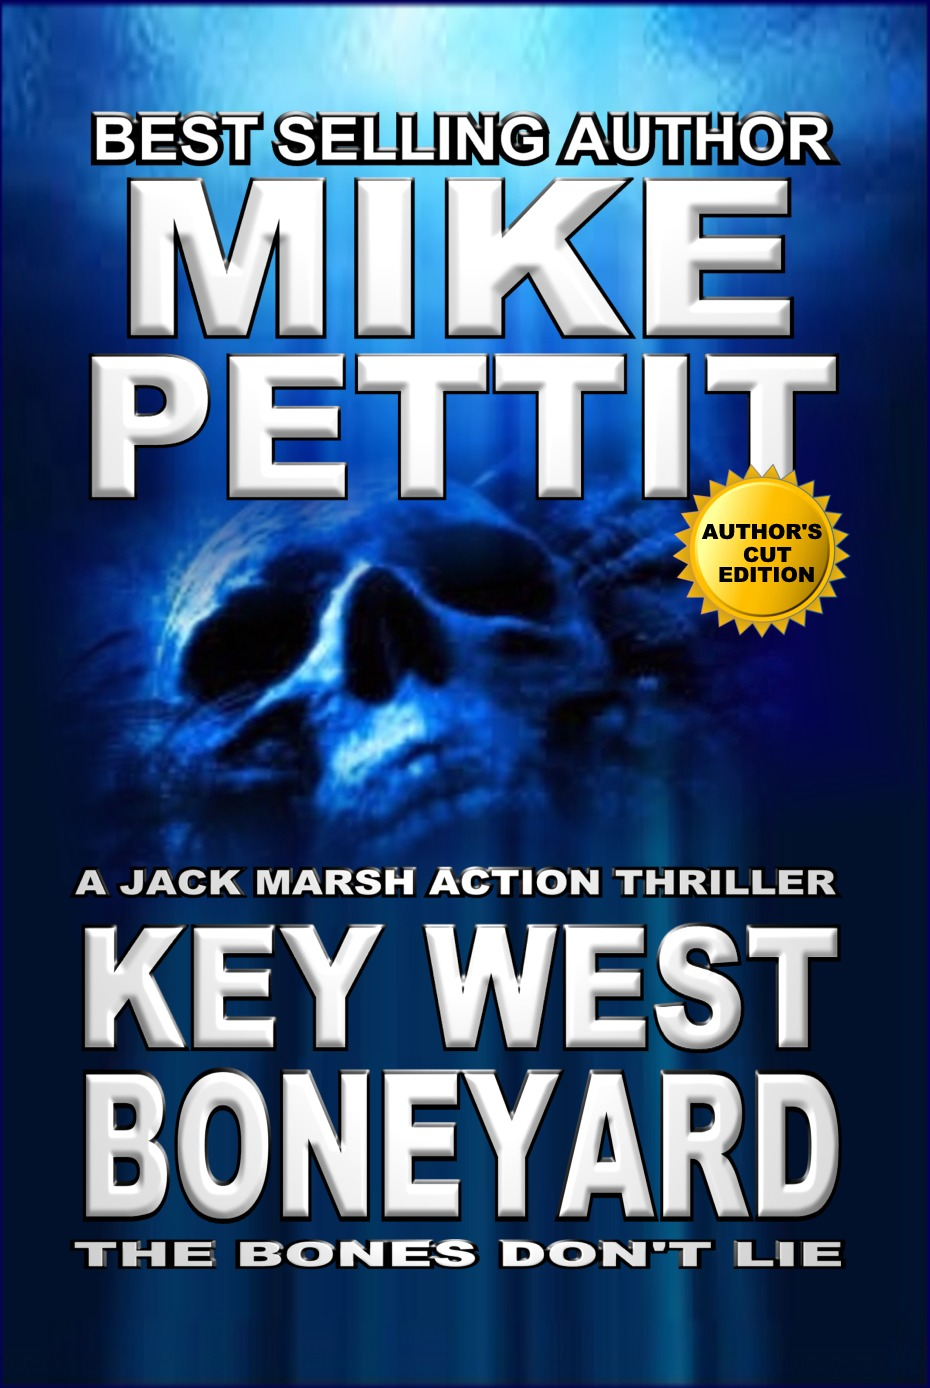 KEY WEST BONEYARD